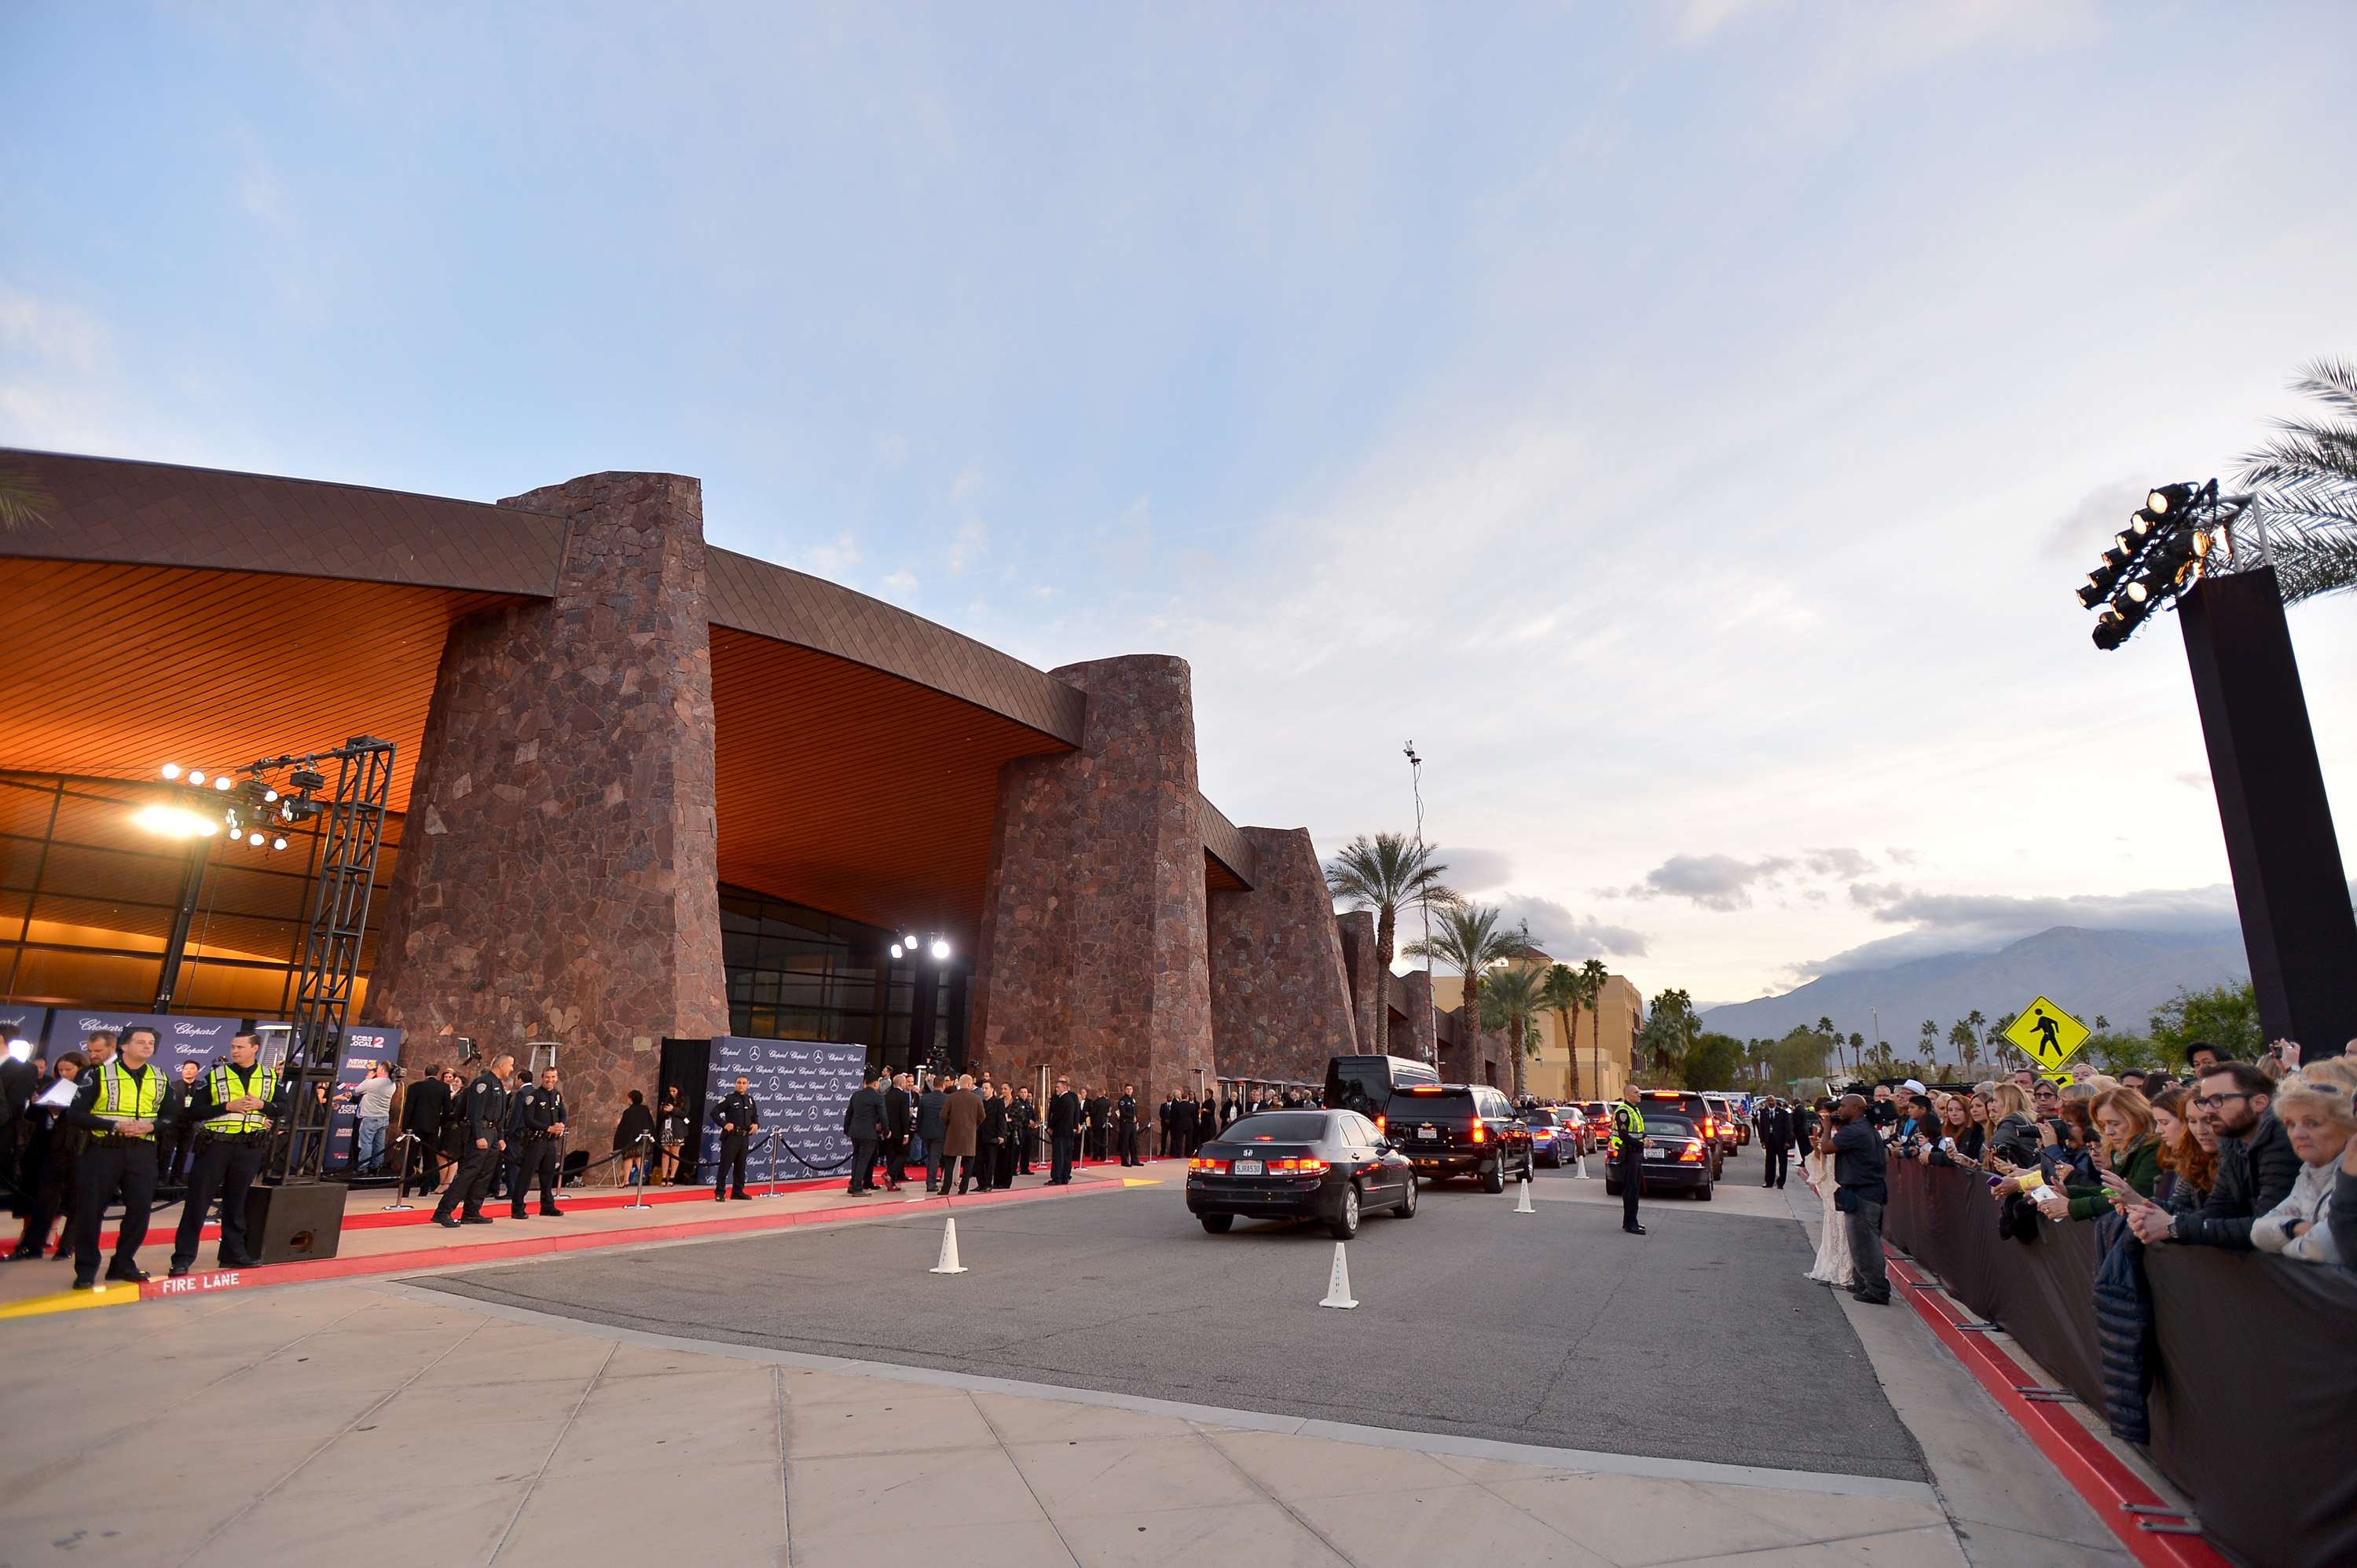 PALM SPRINGS, CA - JANUARY 02: The pre-show atmosphere as seen outside the 28th Annual Palm Springs International Film Festival Film Awards Gala at the Palm Springs Convention Center on January 2, 2017 in Palm Springs, California. (Photo by Charley Gallay/Getty Images for Palm Springs International Film Festival)